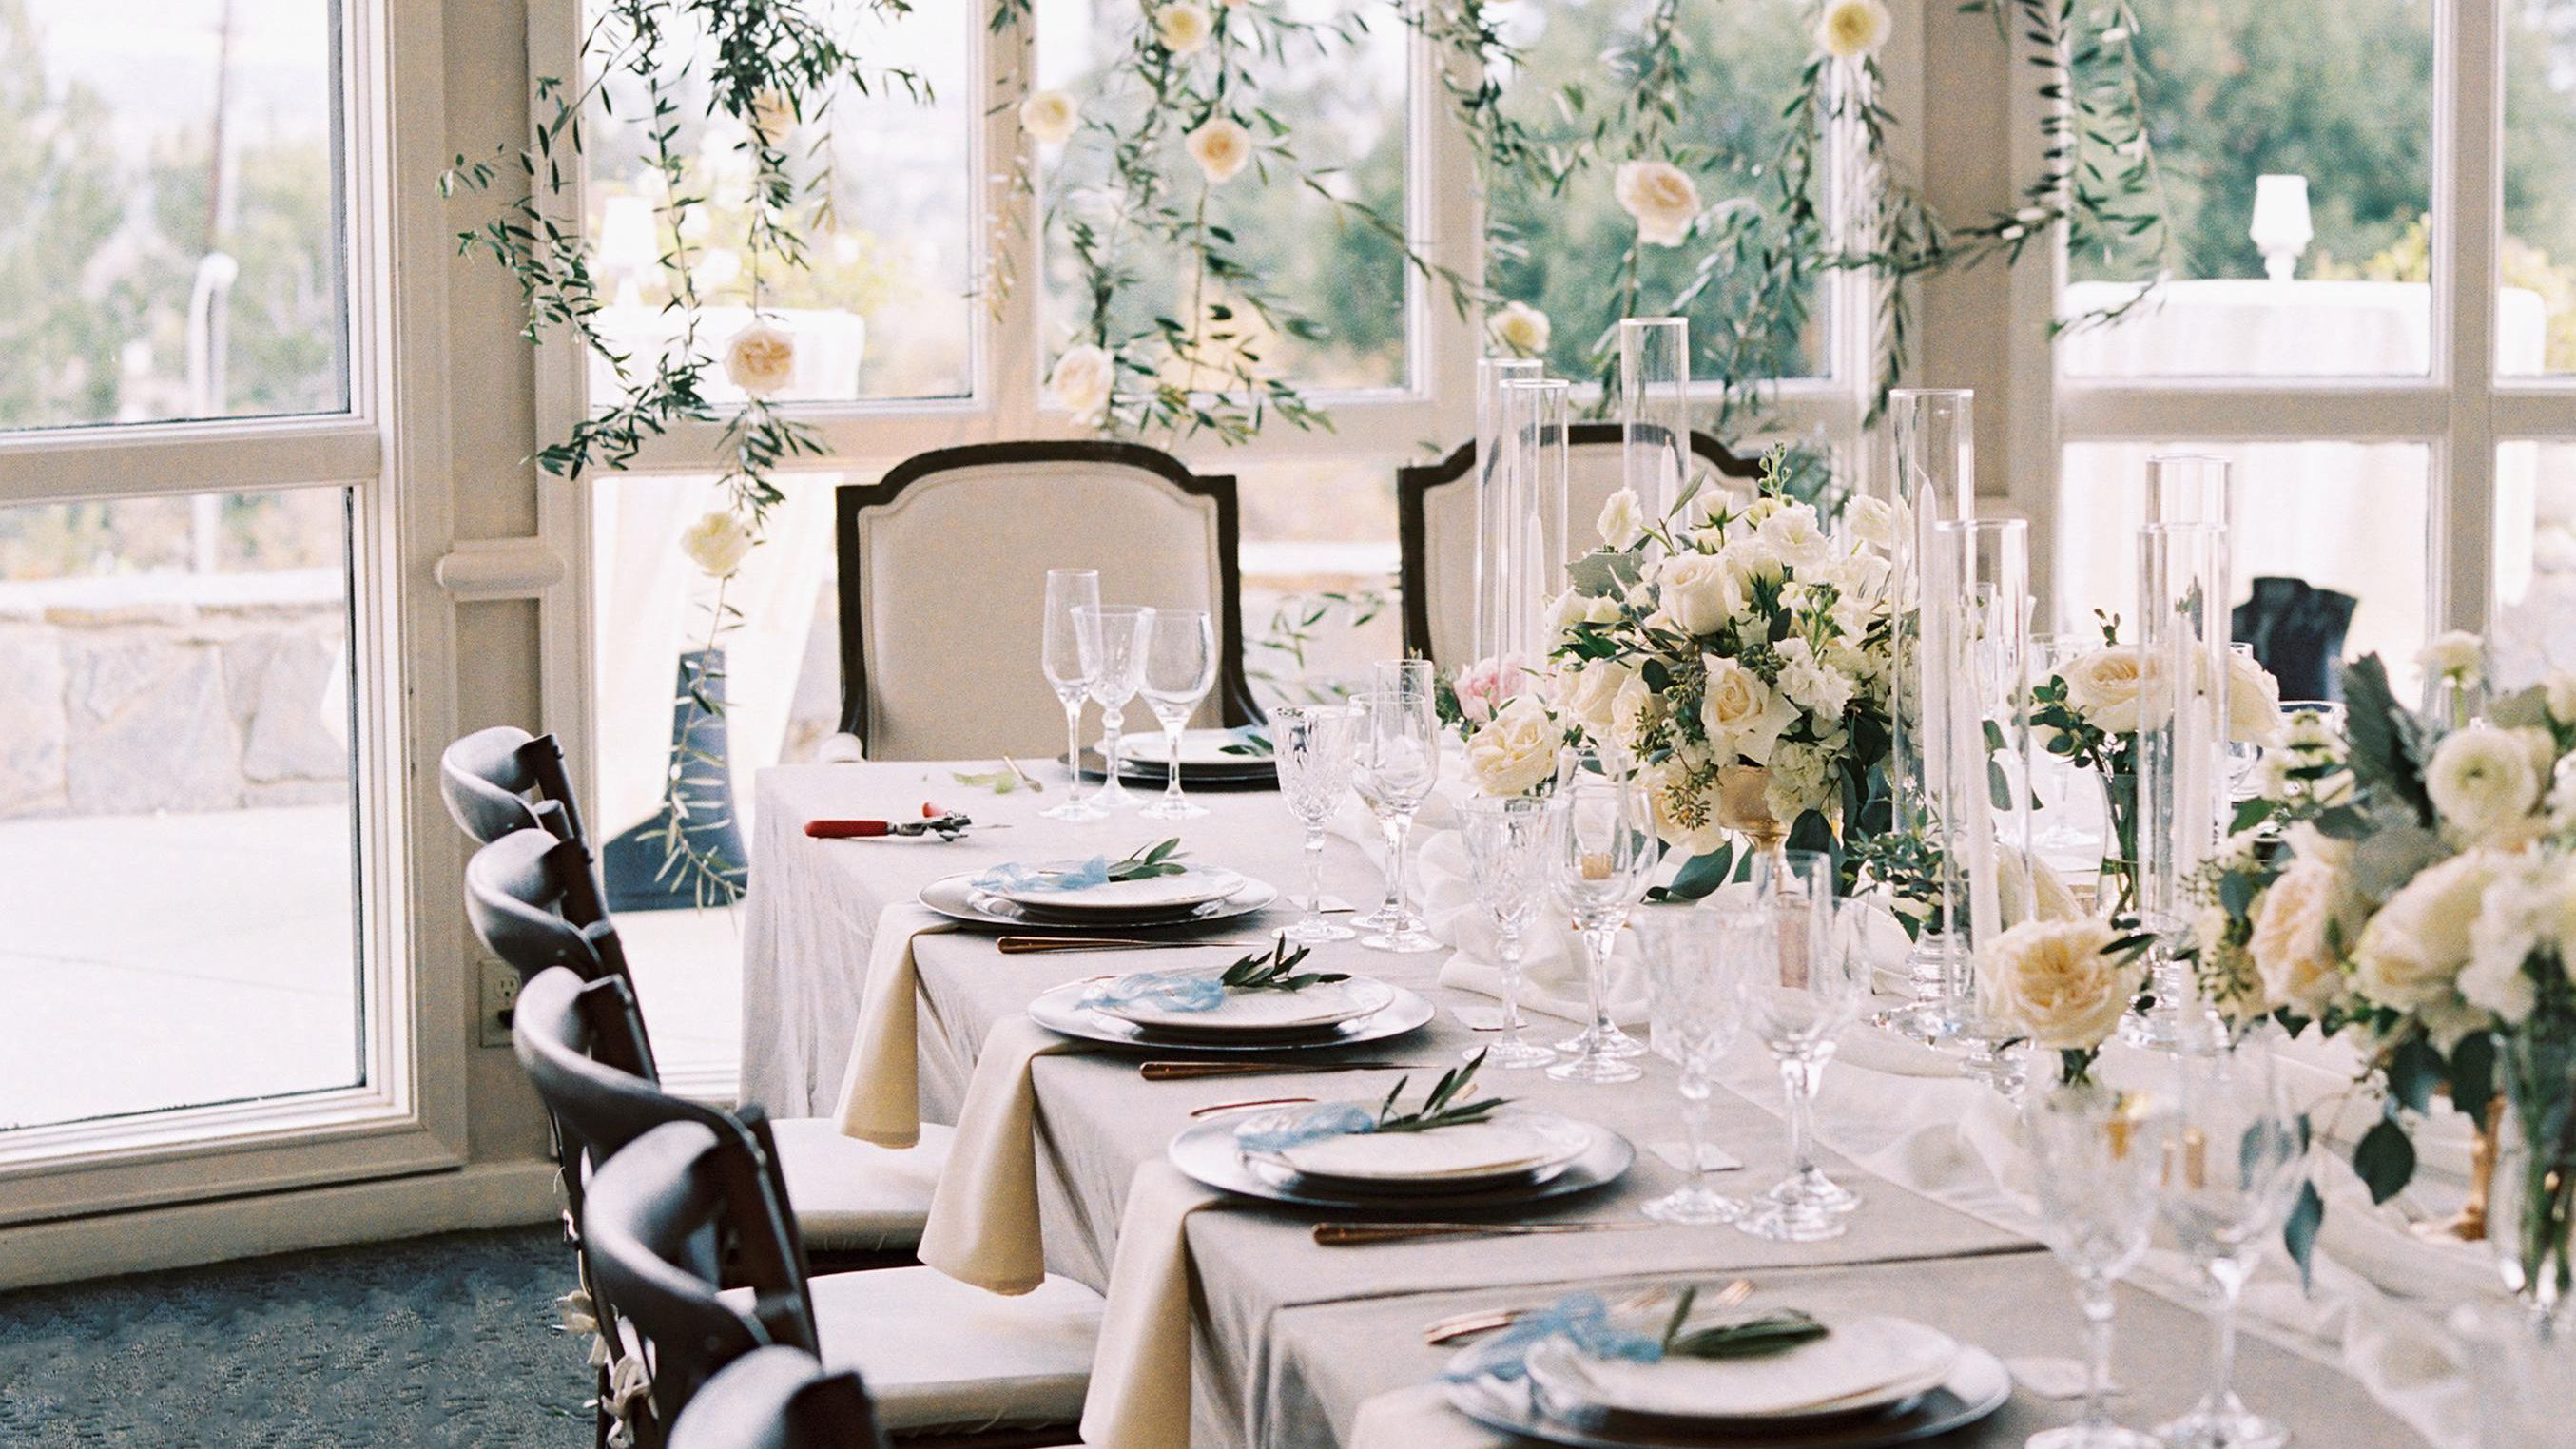 How To Set A Dinner Table For A Formal Reception